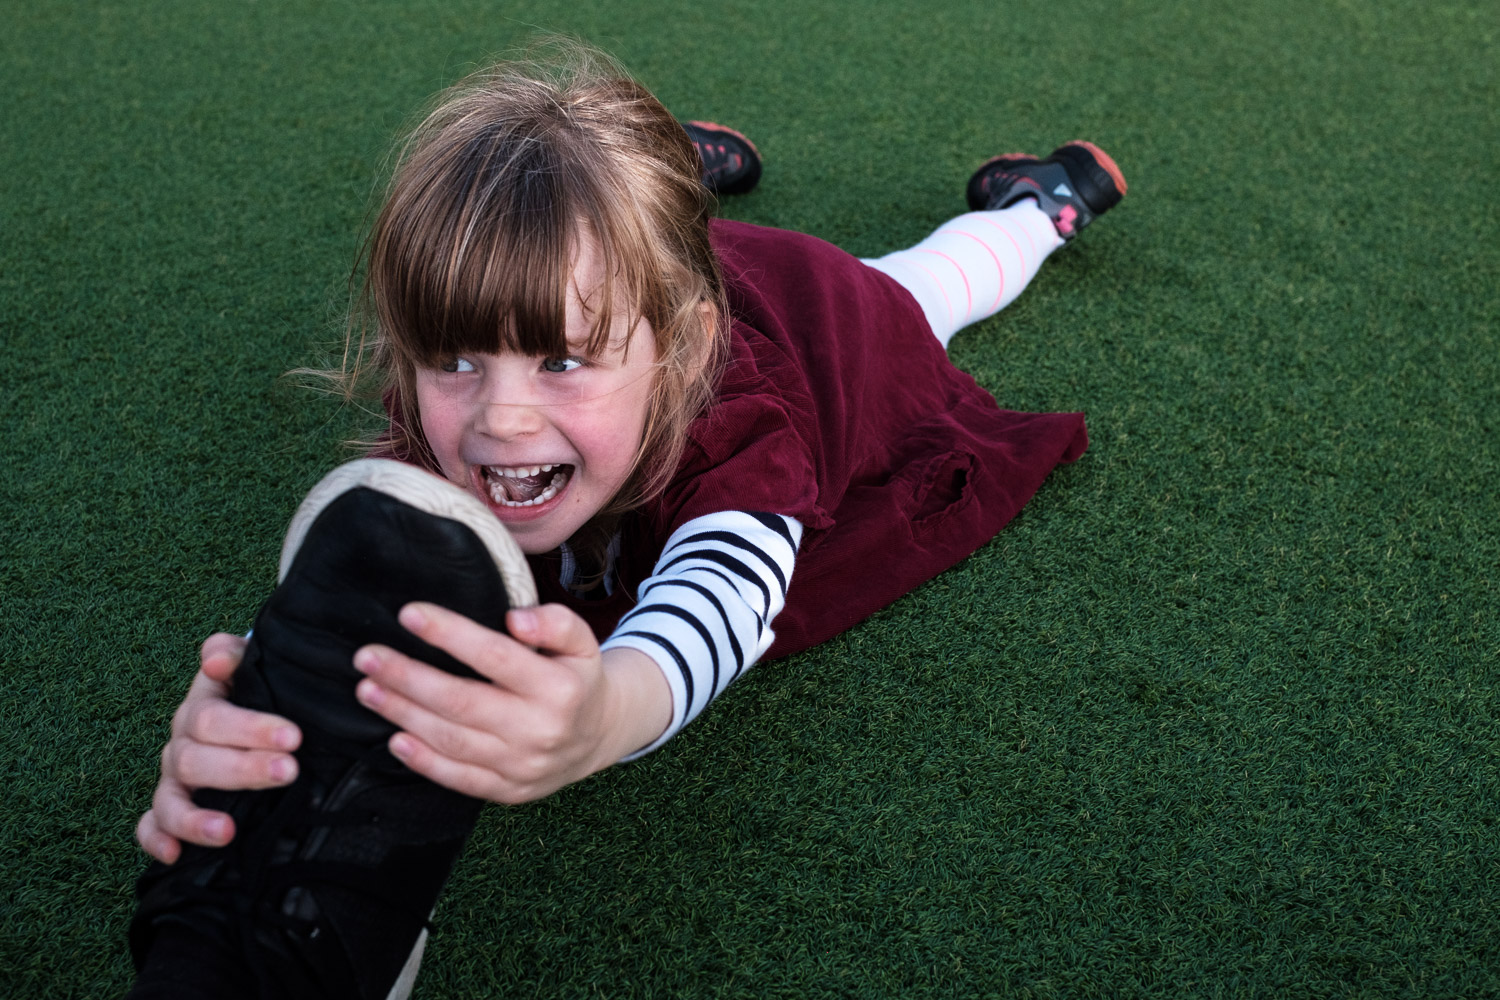 Child gripping onto a shoe and laughing.